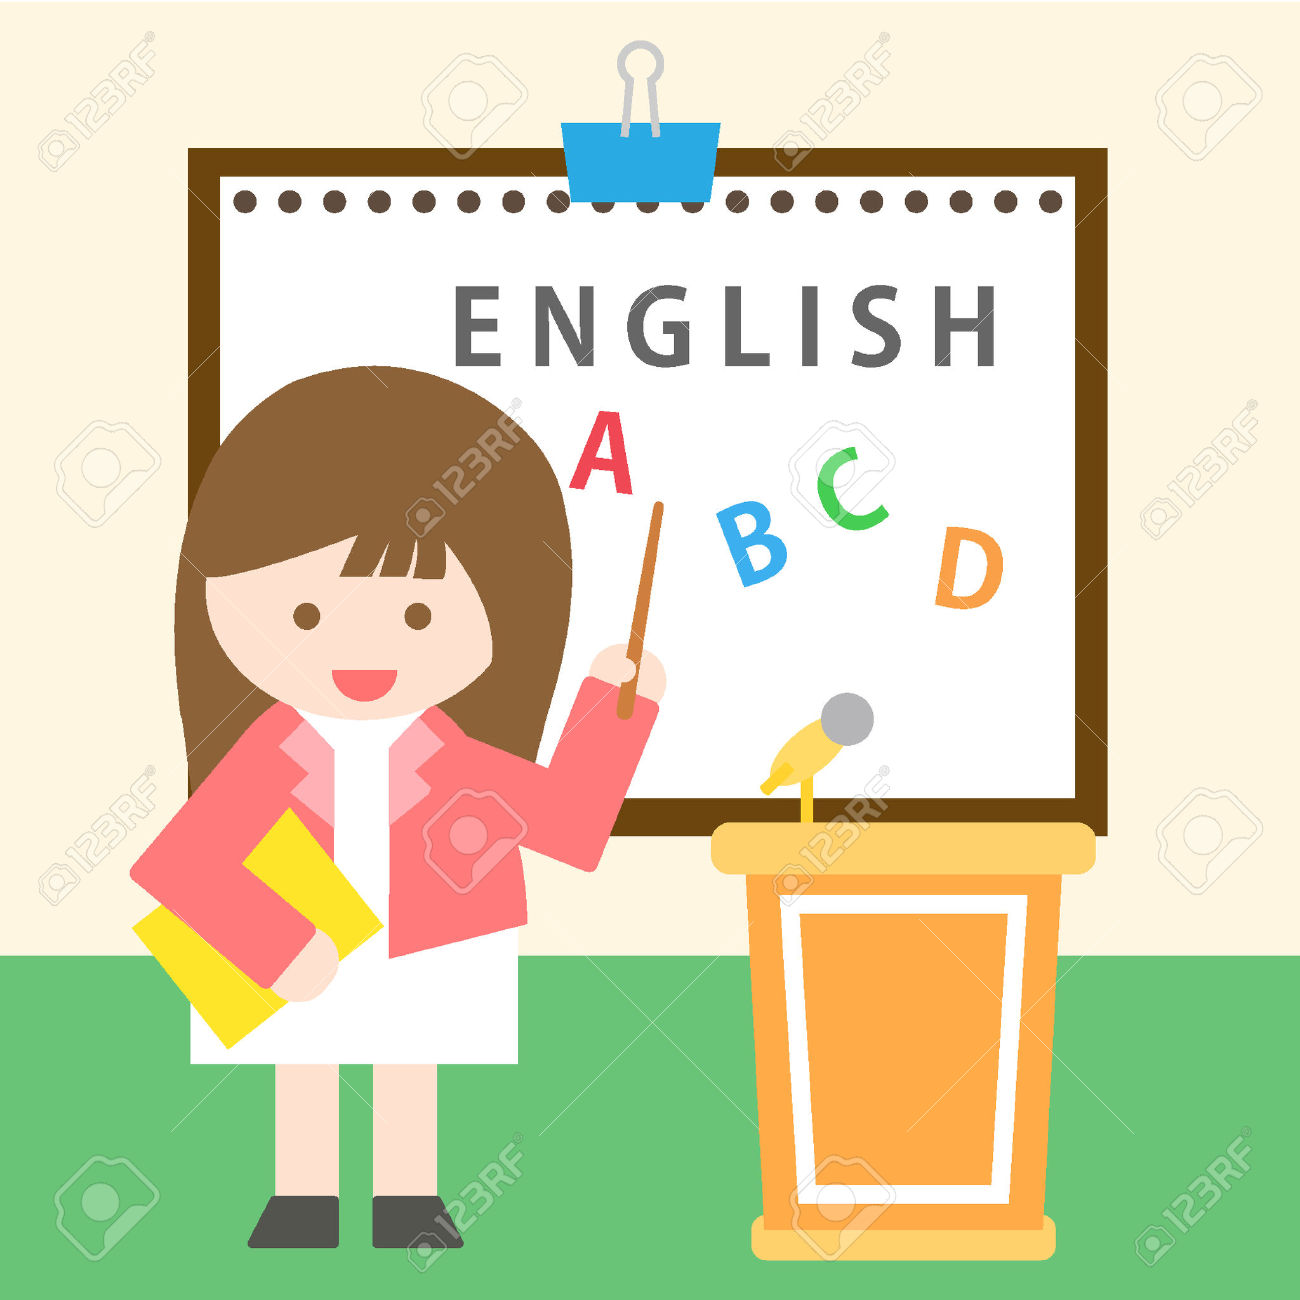 Free English Class Clipart-Free English Class Clipart-3